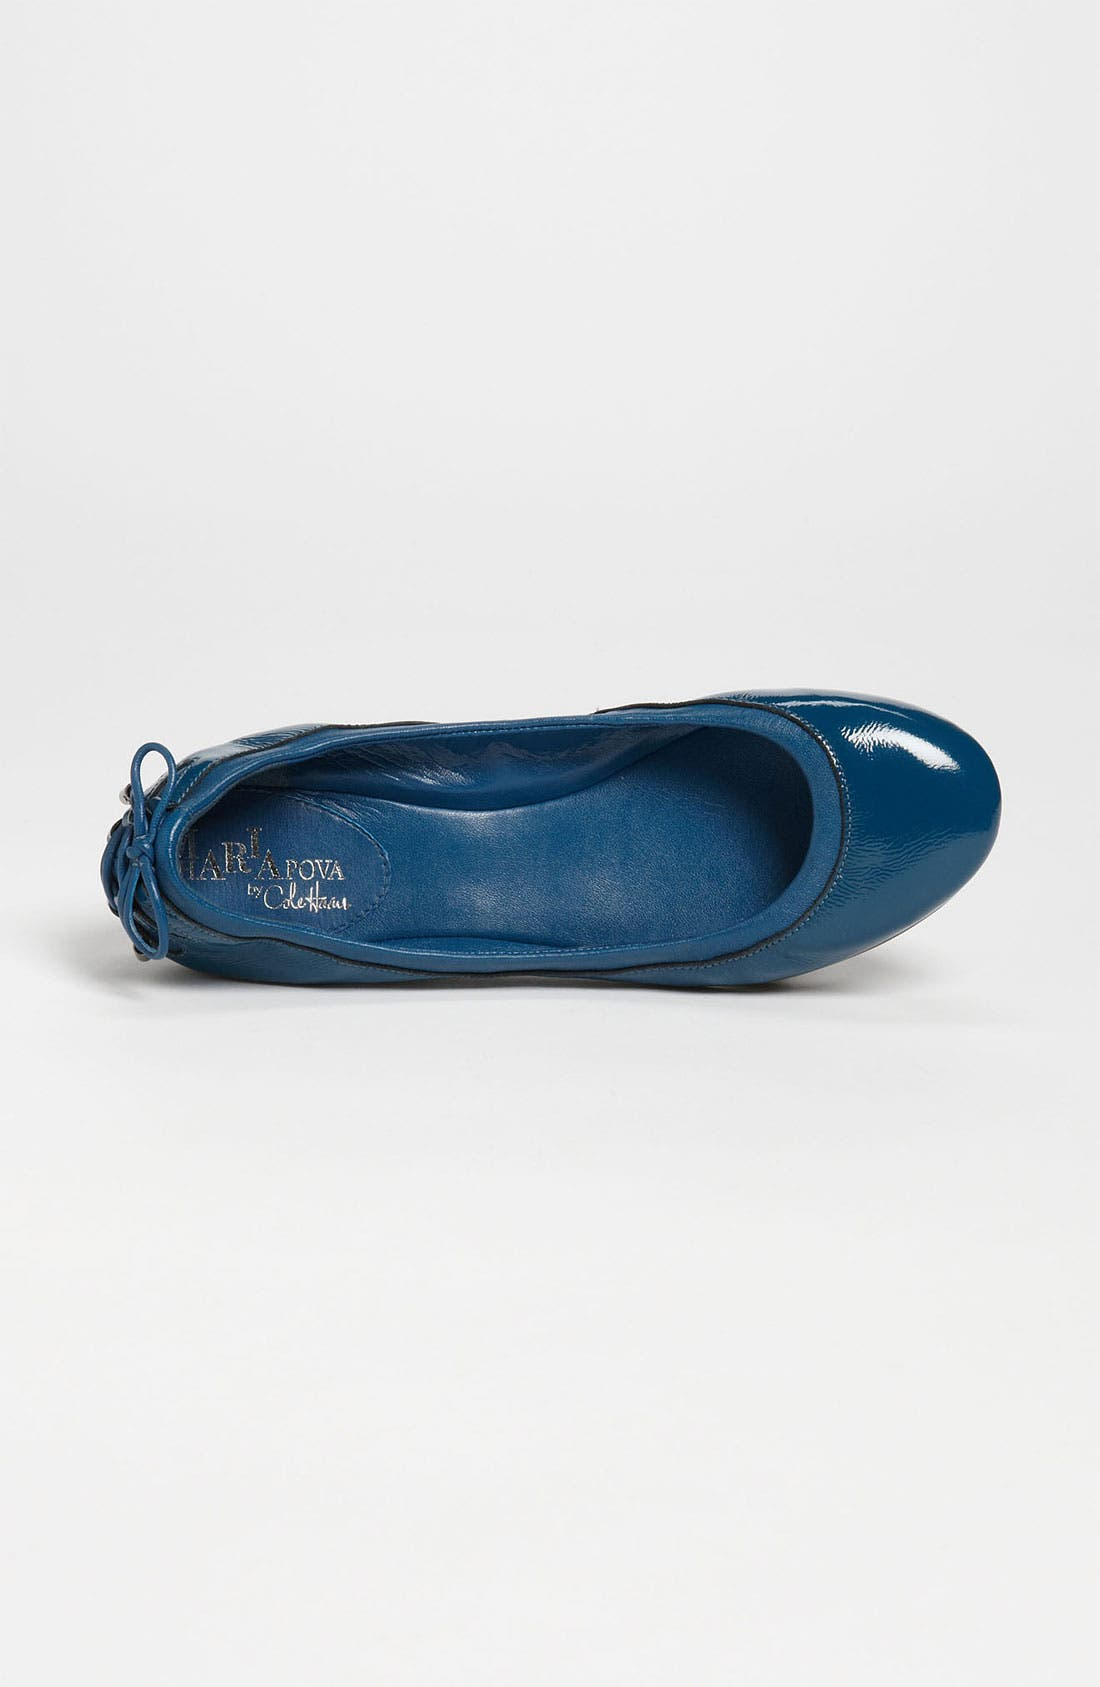 ,                             Maria Sharapova by Cole Haan 'Air Bacara' Flat,                             Alternate thumbnail 78, color,                             440